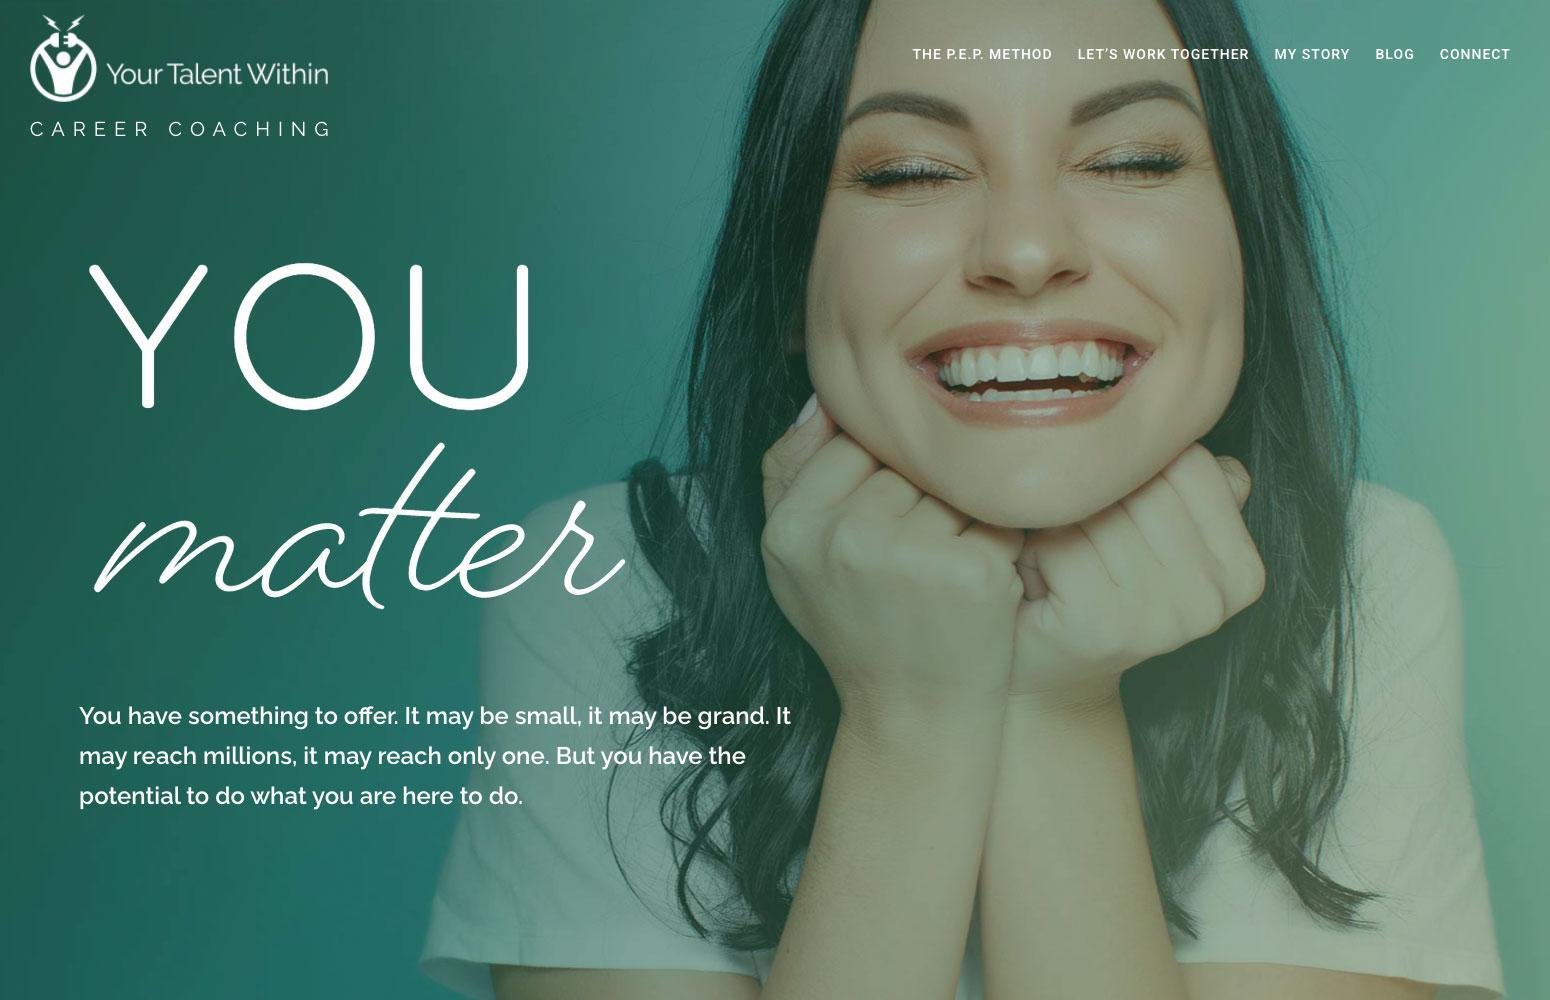 your-talent-within-wordpress-website-smiling-woman